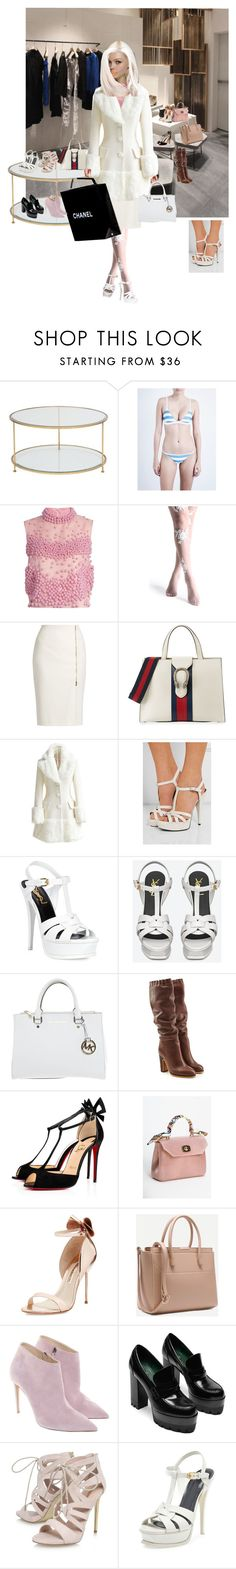 """Sin título #447"" by patricia-fonseca-1 on Polyvore featuring moda, Solid & Striped, Roksanda, MaxMara, Gucci, WithChic, Yves Saint Laurent, Michael Kors, See by Chloé y Chanel"